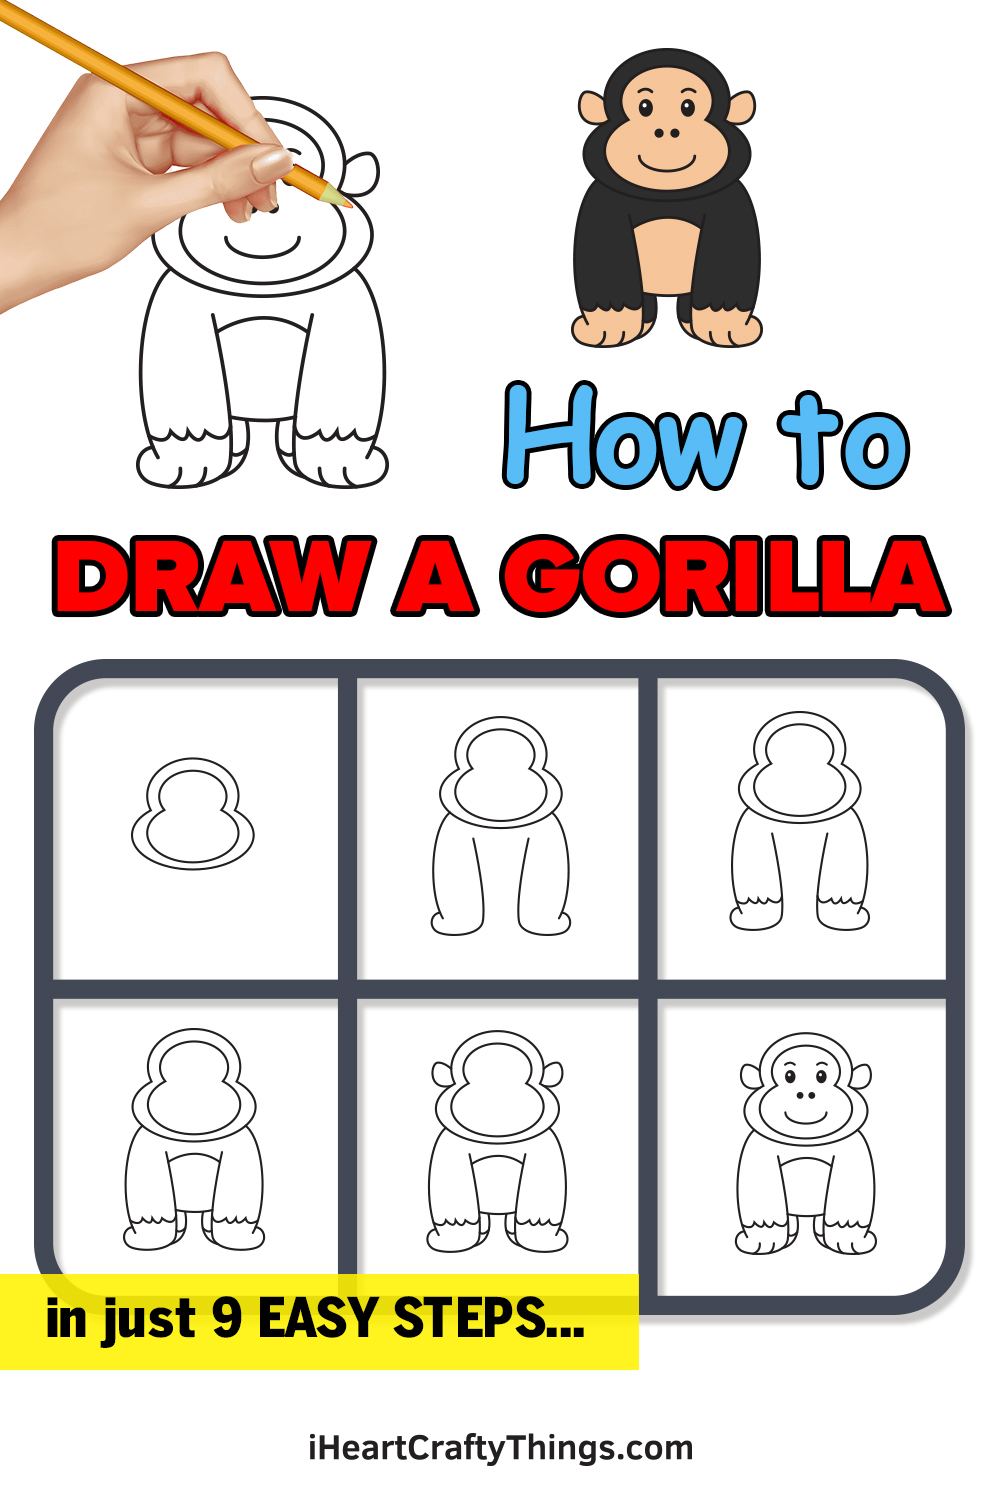 how to draw a gorilla in 9 easy steps